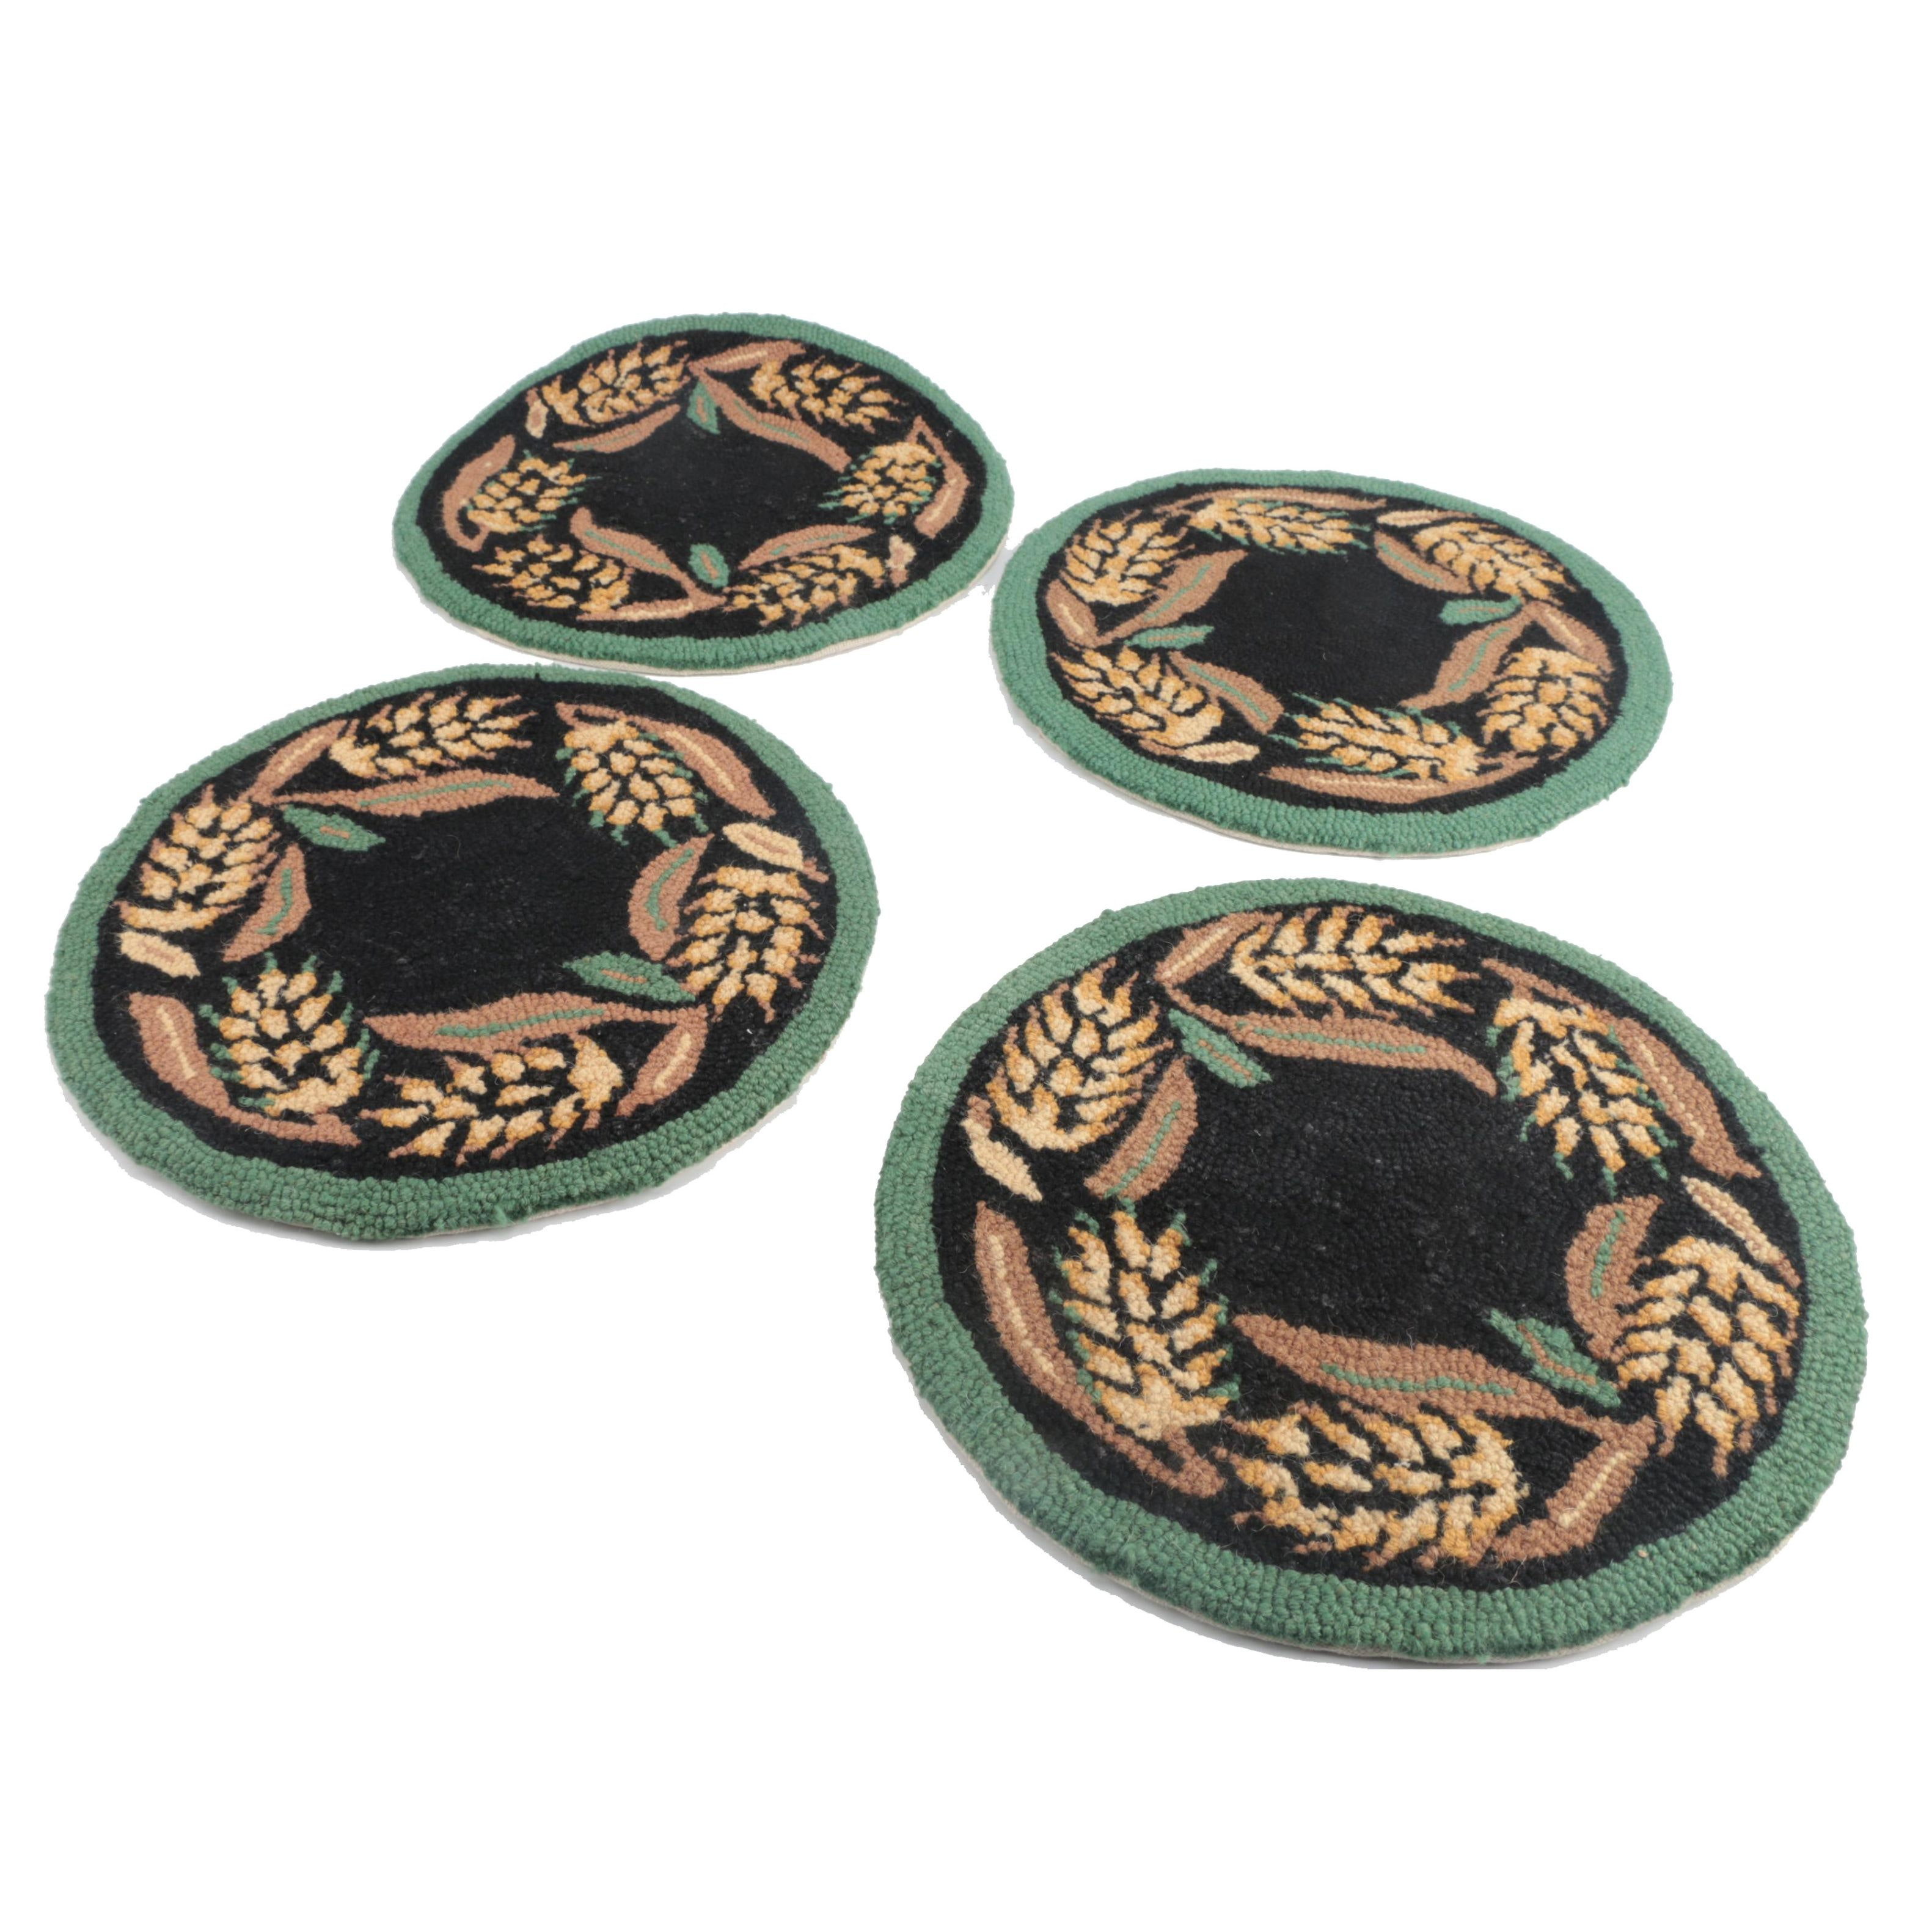 Plow & Hearth Needlepoint Chairpads